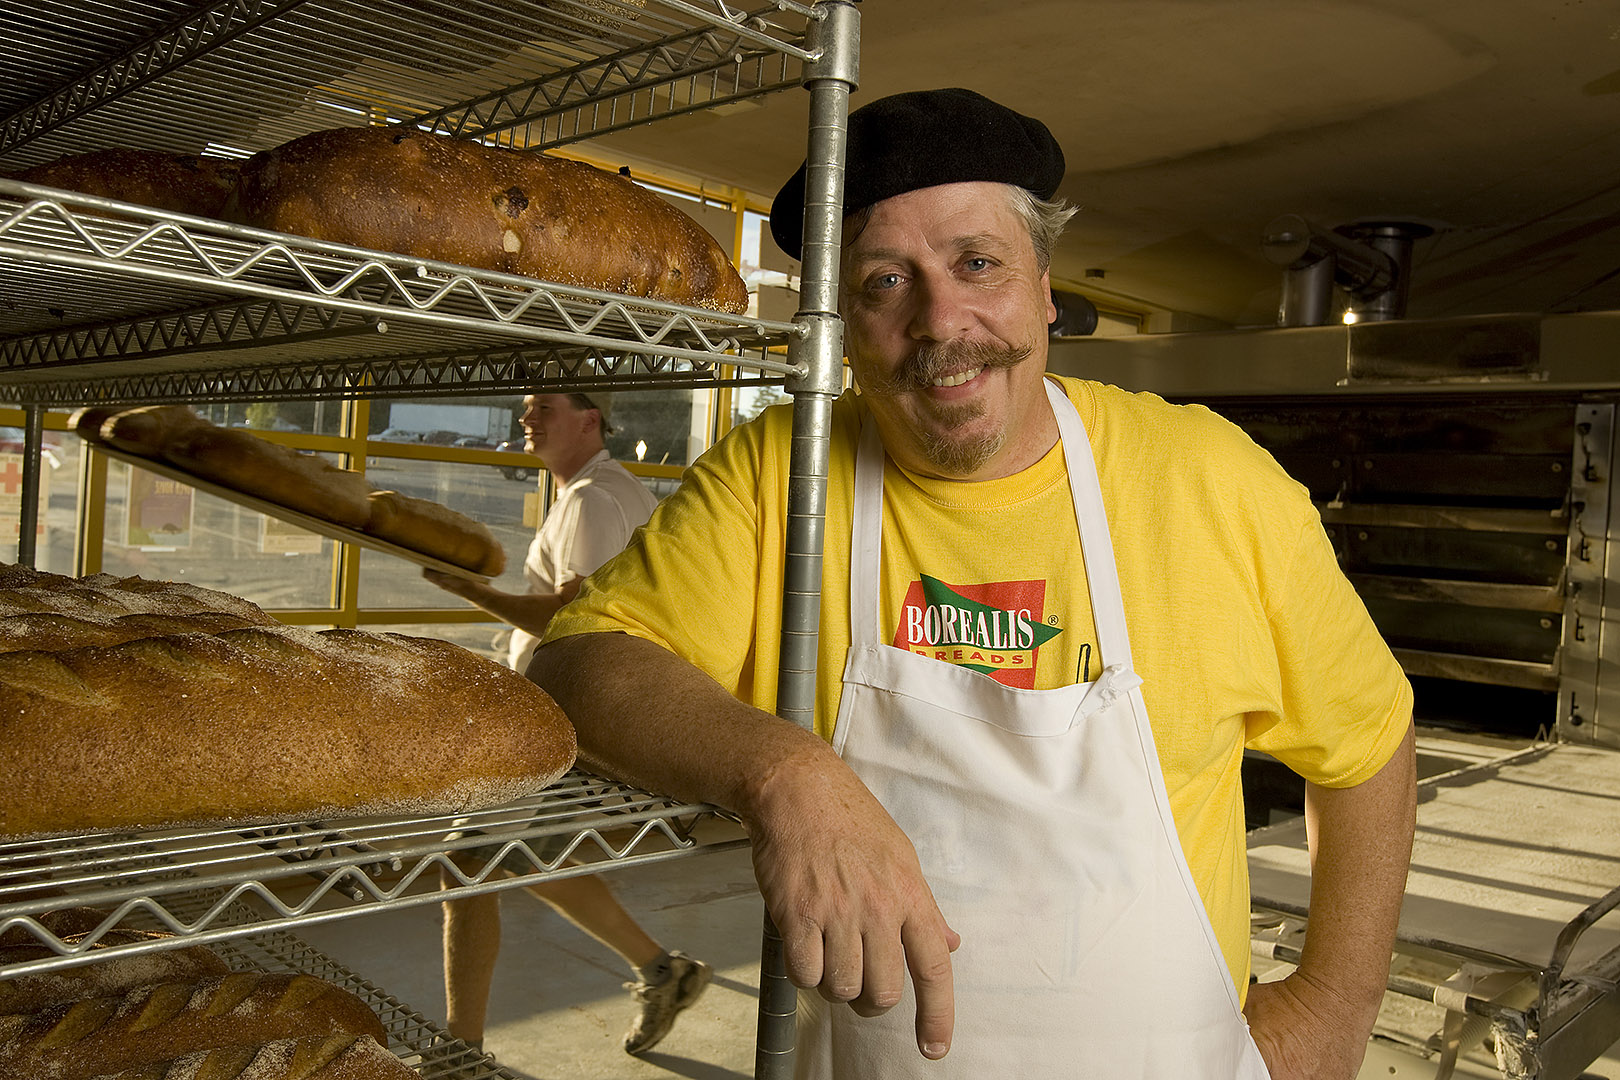 James Amaral '80, president and founder of Borealis Breads, poses and works at 1165 Post Road (Rte 1) in Wells, one of the two locations for his company (the other is in Waldoboro). The Wells store includes retail and baking facilities, as well as the company's offices.